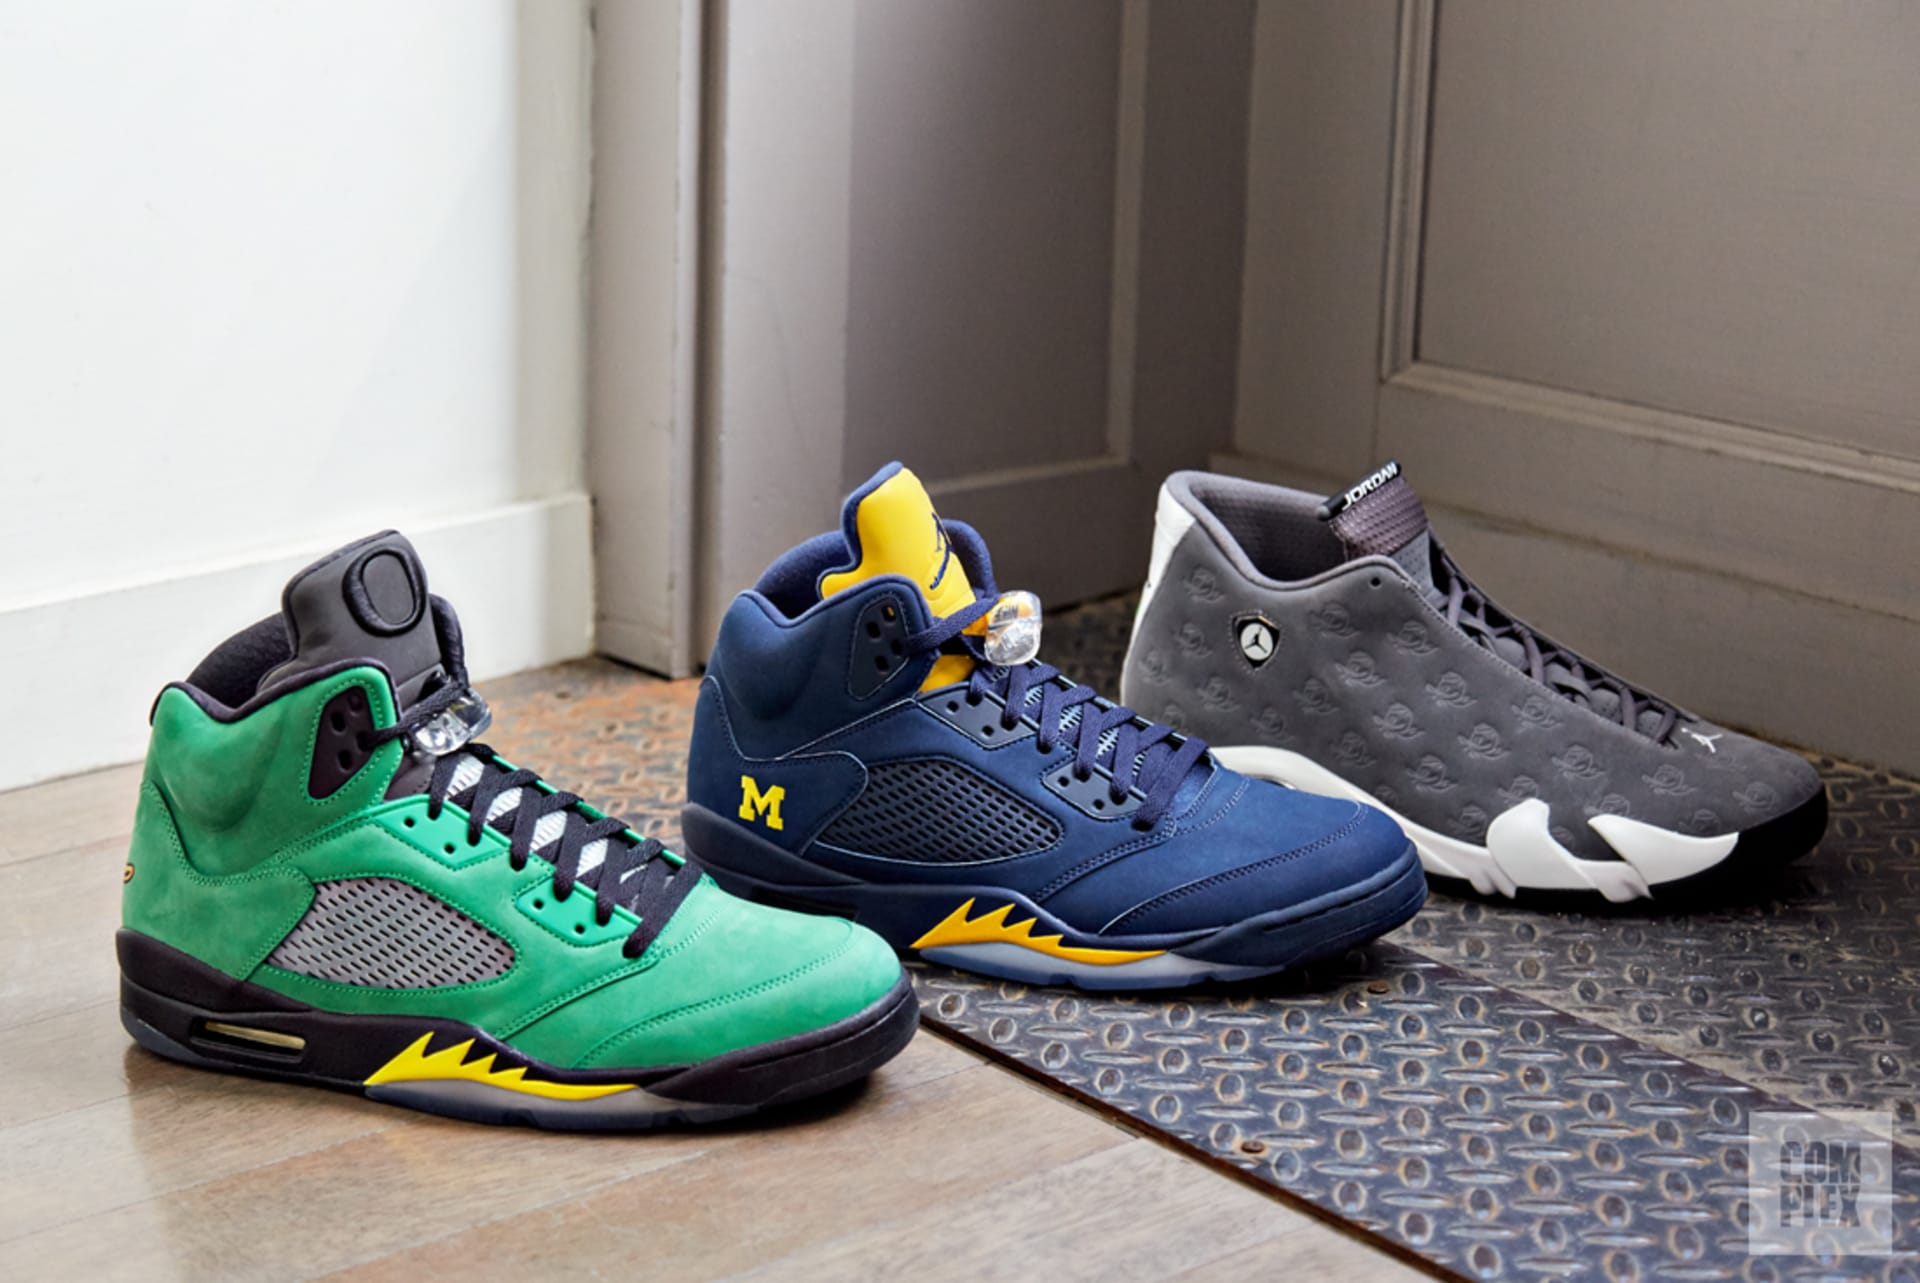 e360287944f7d8 Air Jordan PEs made for the University of Oregon and Michigan. Sneakers  courtesy of Stadium Goods. Image via Complex Original David Cabrera